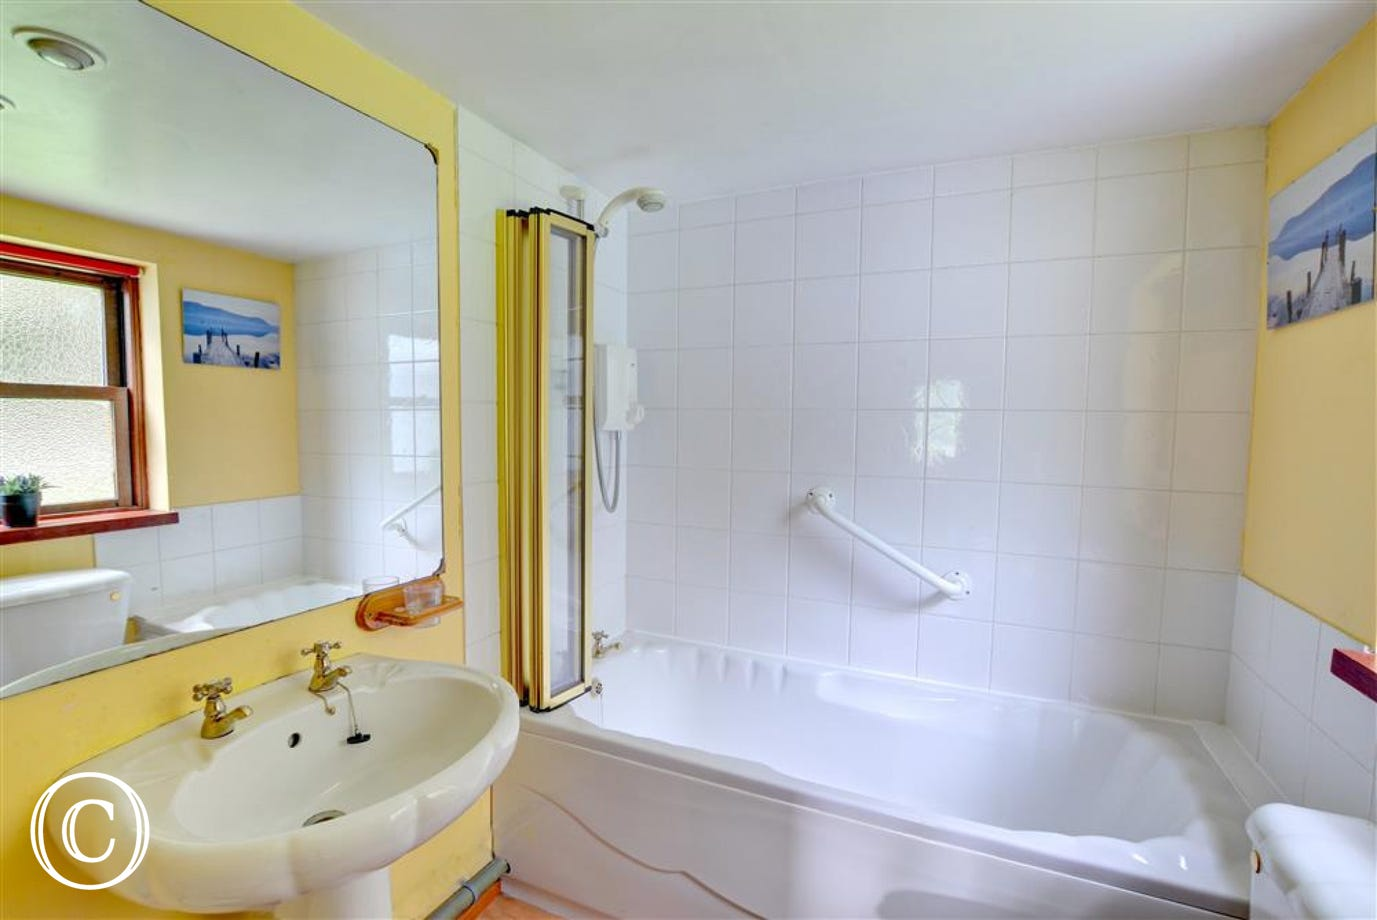 This brightly decorated bathroom includes an electric shower over the bath